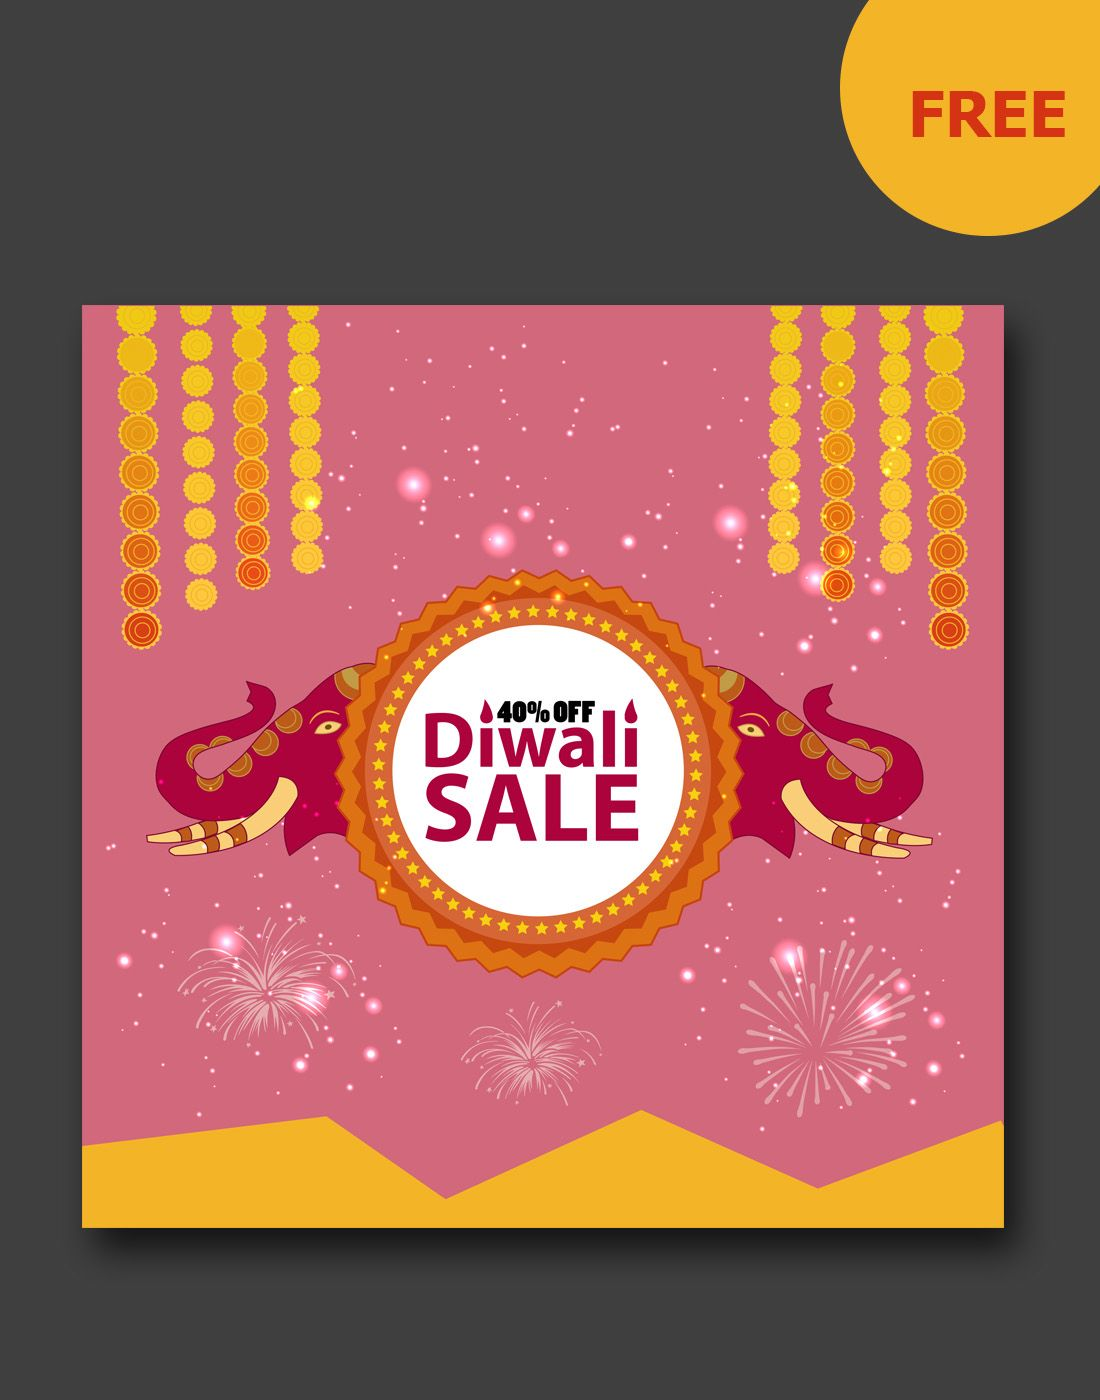 Diwali Sale Banners Pinterest Sale Banner Diwali And Banners